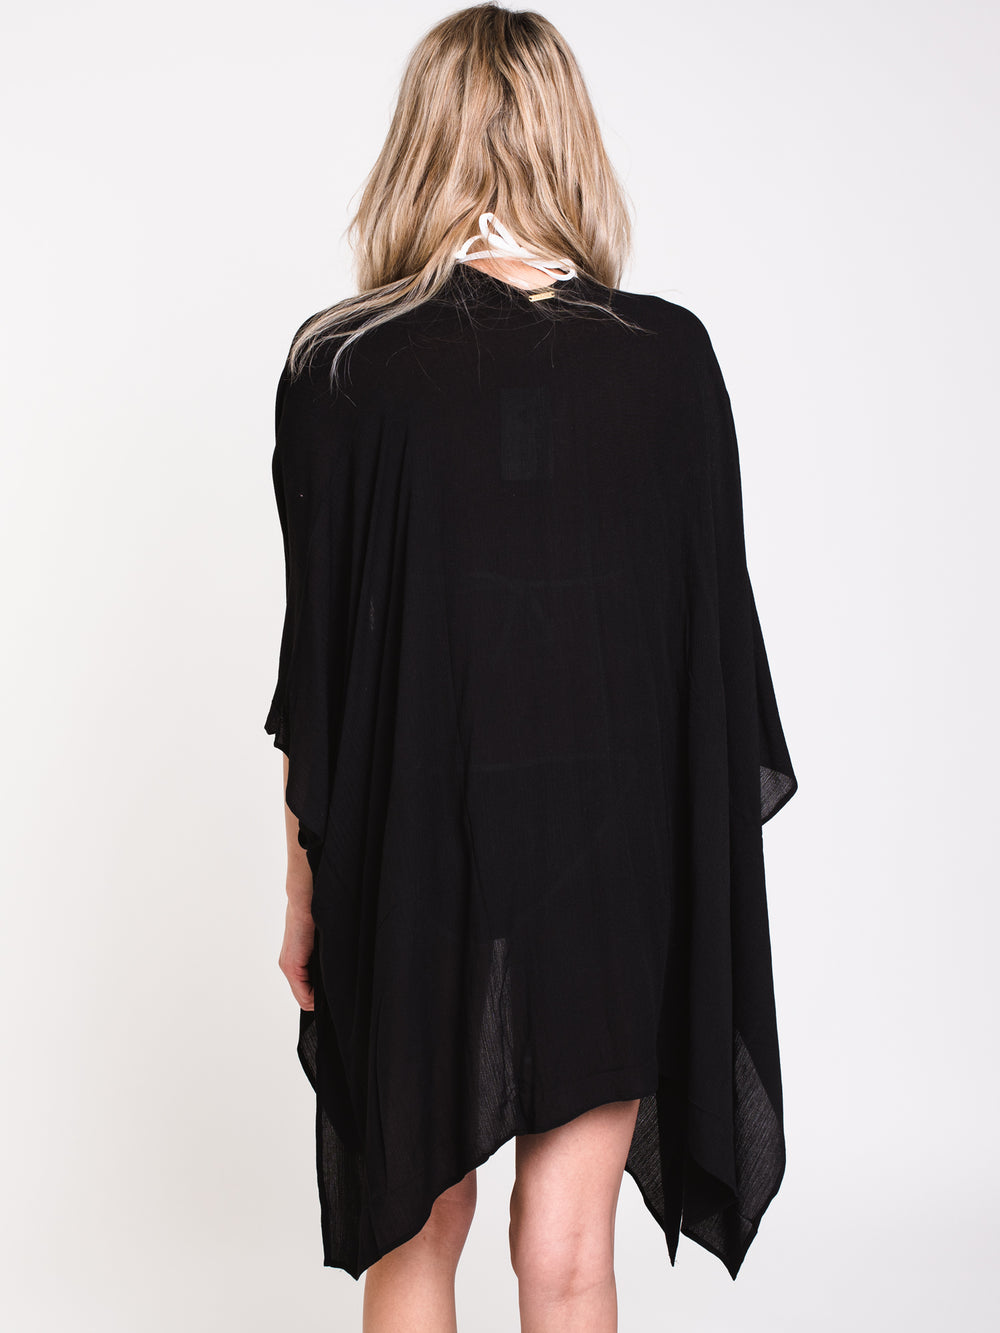 AUBREE COVER UP - BLACK